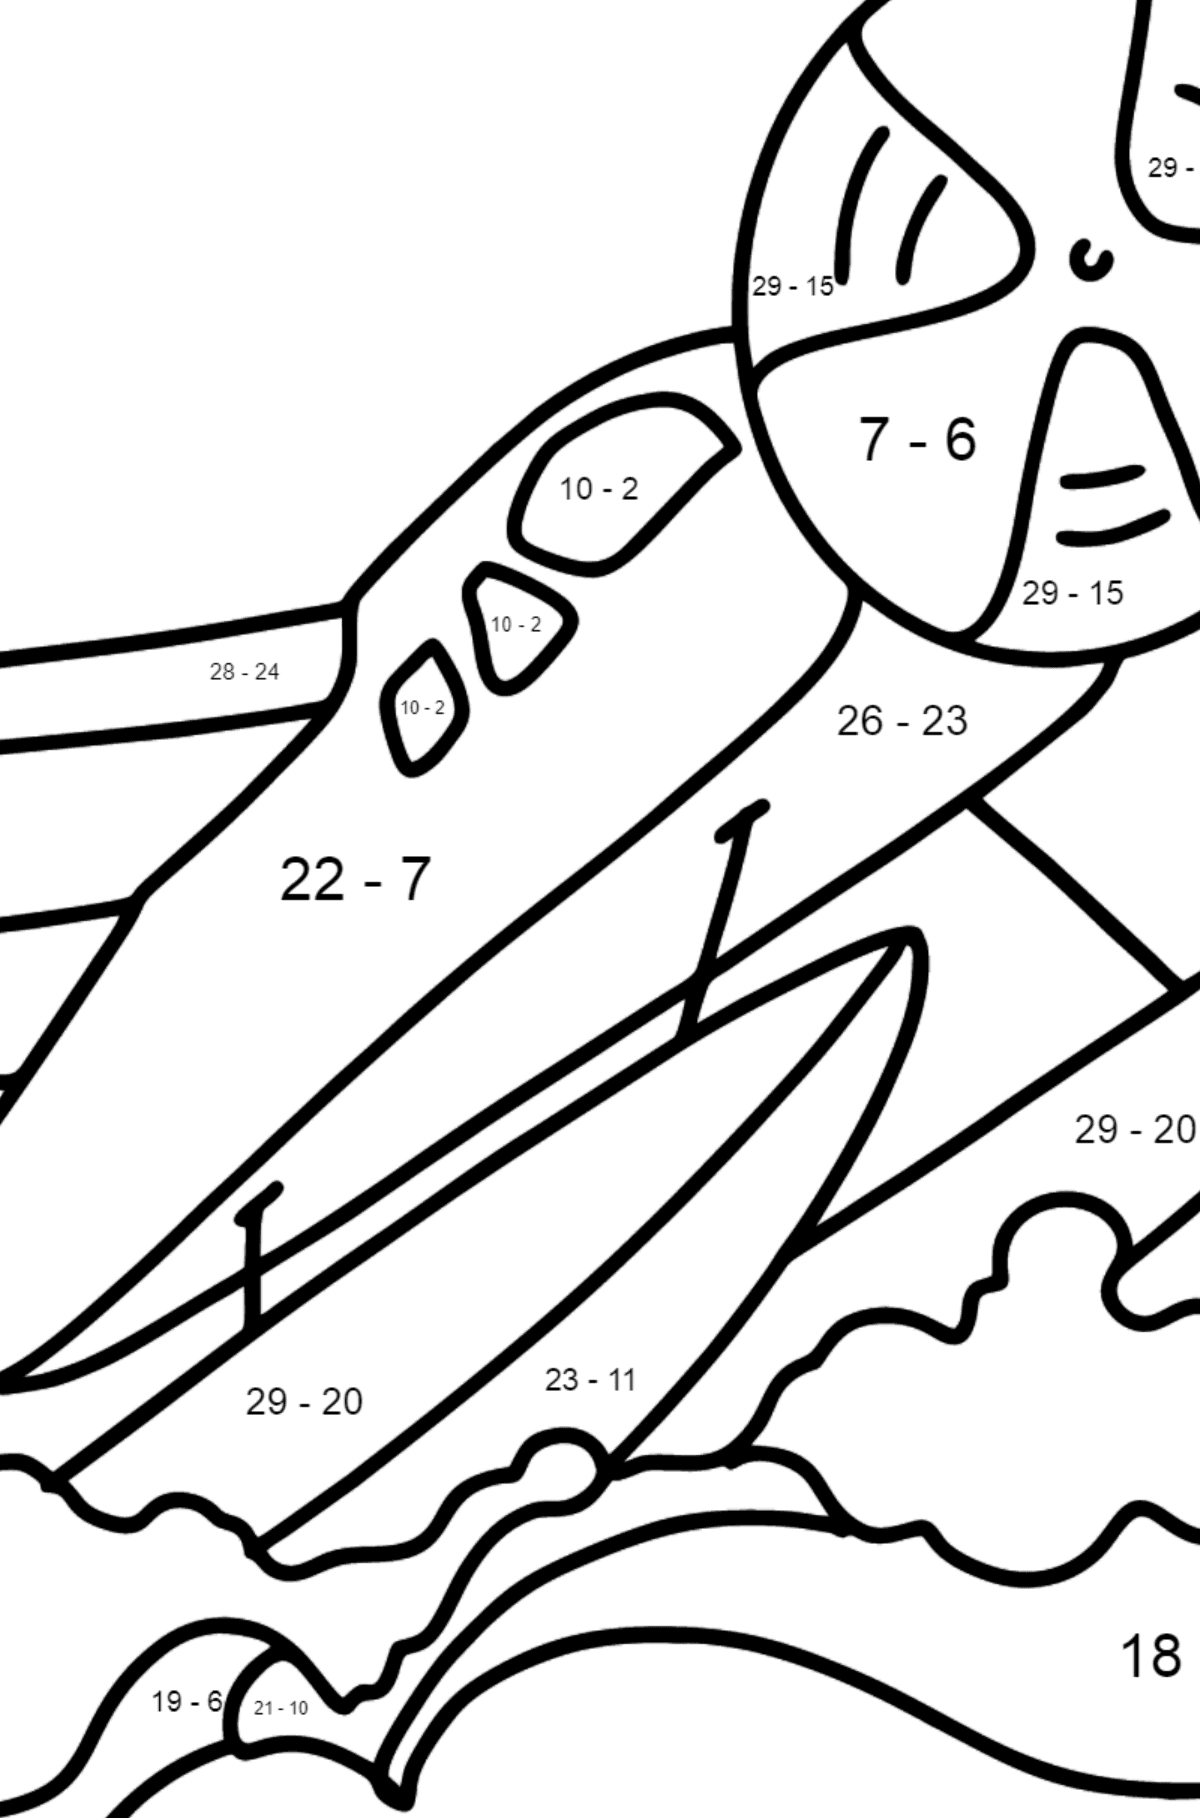 Amphibious Airplane coloring page - Math Coloring - Subtraction for Kids